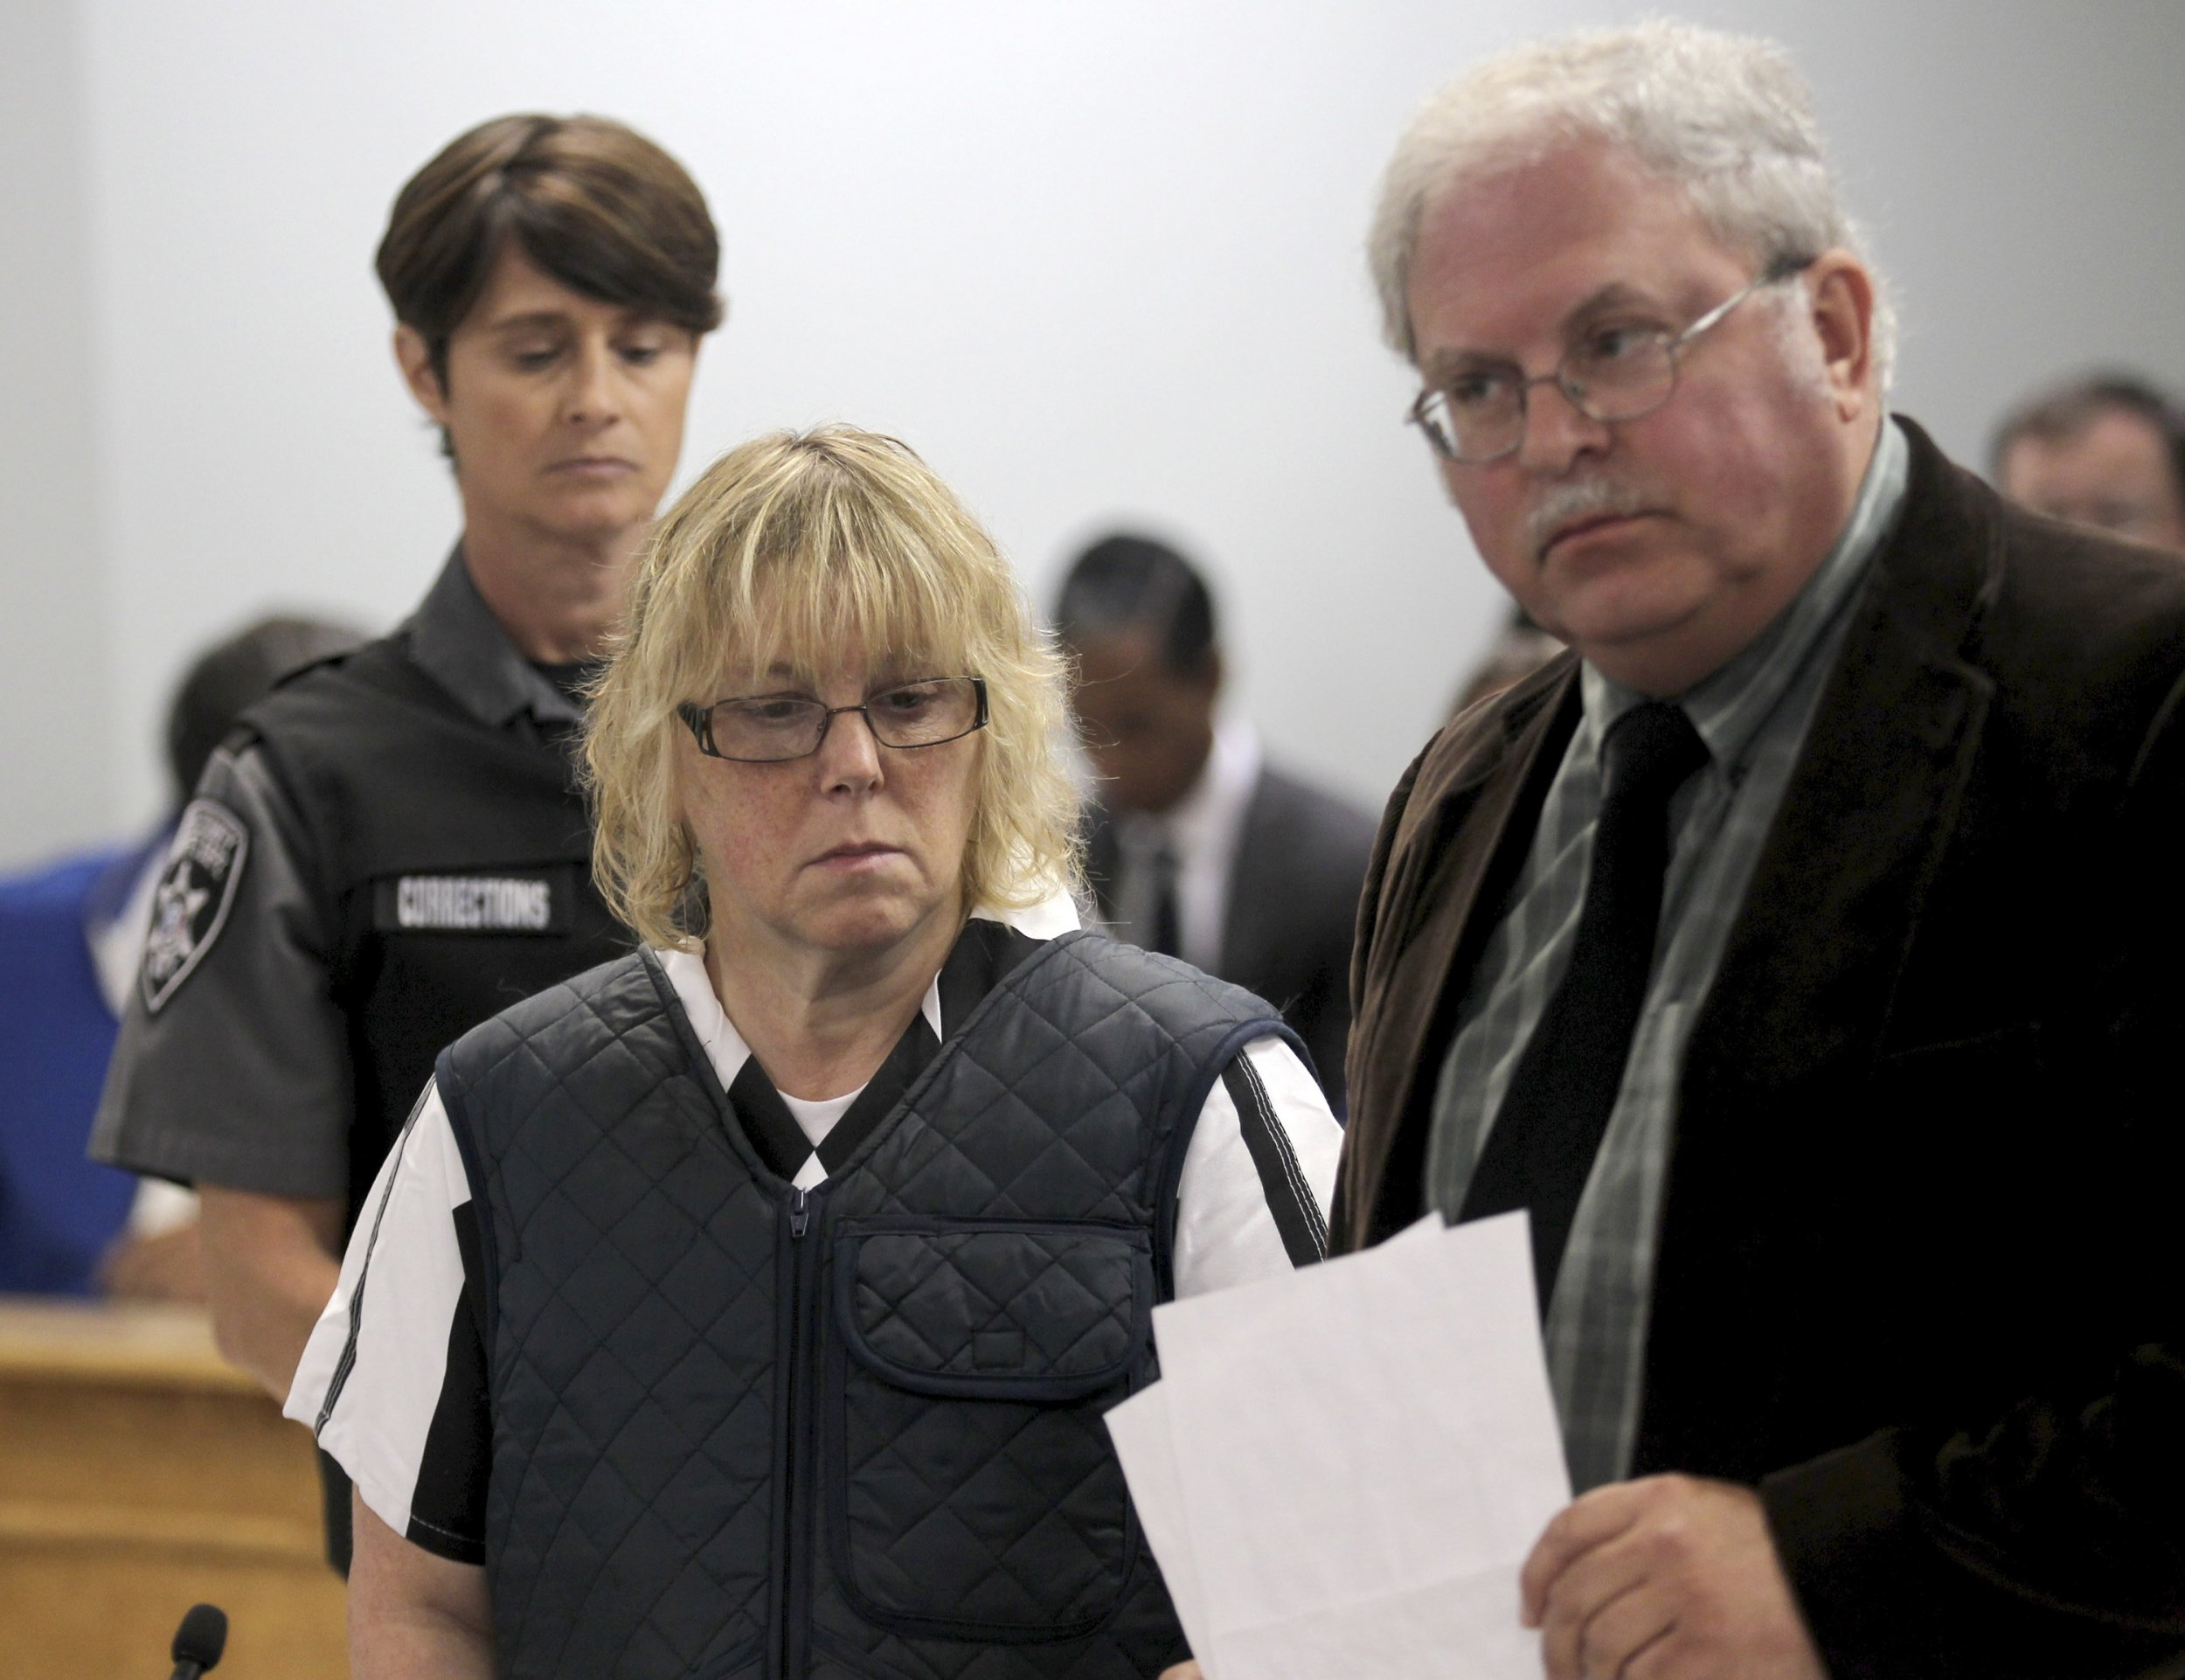 Joyce Mitchell Pleads Guilty to Promoting Prison Contraband to